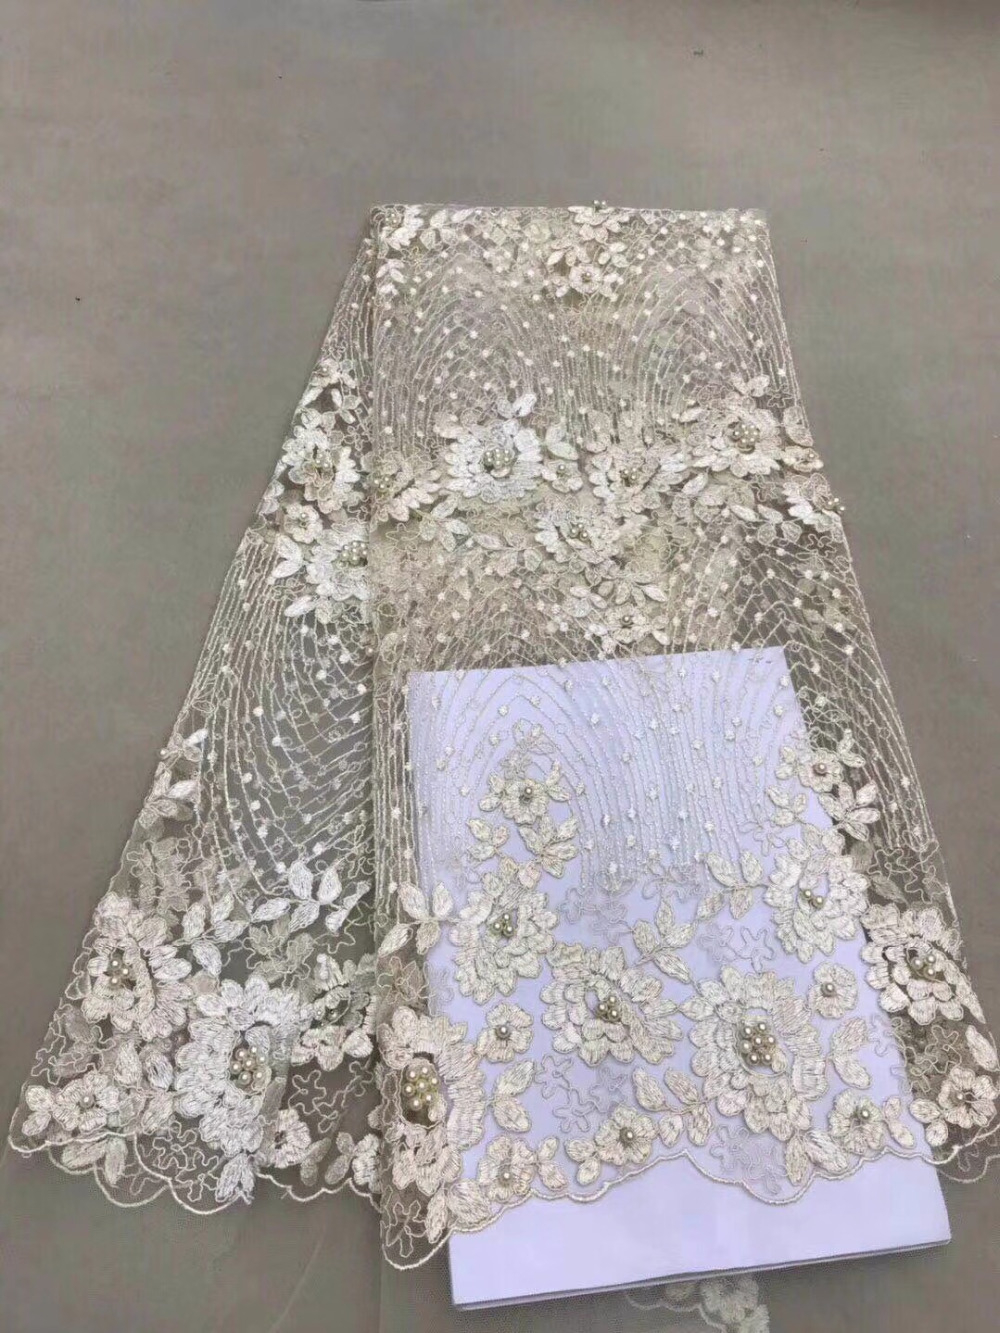 2018 Latest Design Peach African Tulle Lace Fabric High Quality African Lace Fabric Mesh Lace Material For Bridal2018 Latest Design Peach African Tulle Lace Fabric High Quality African Lace Fabric Mesh Lace Material For Bridal